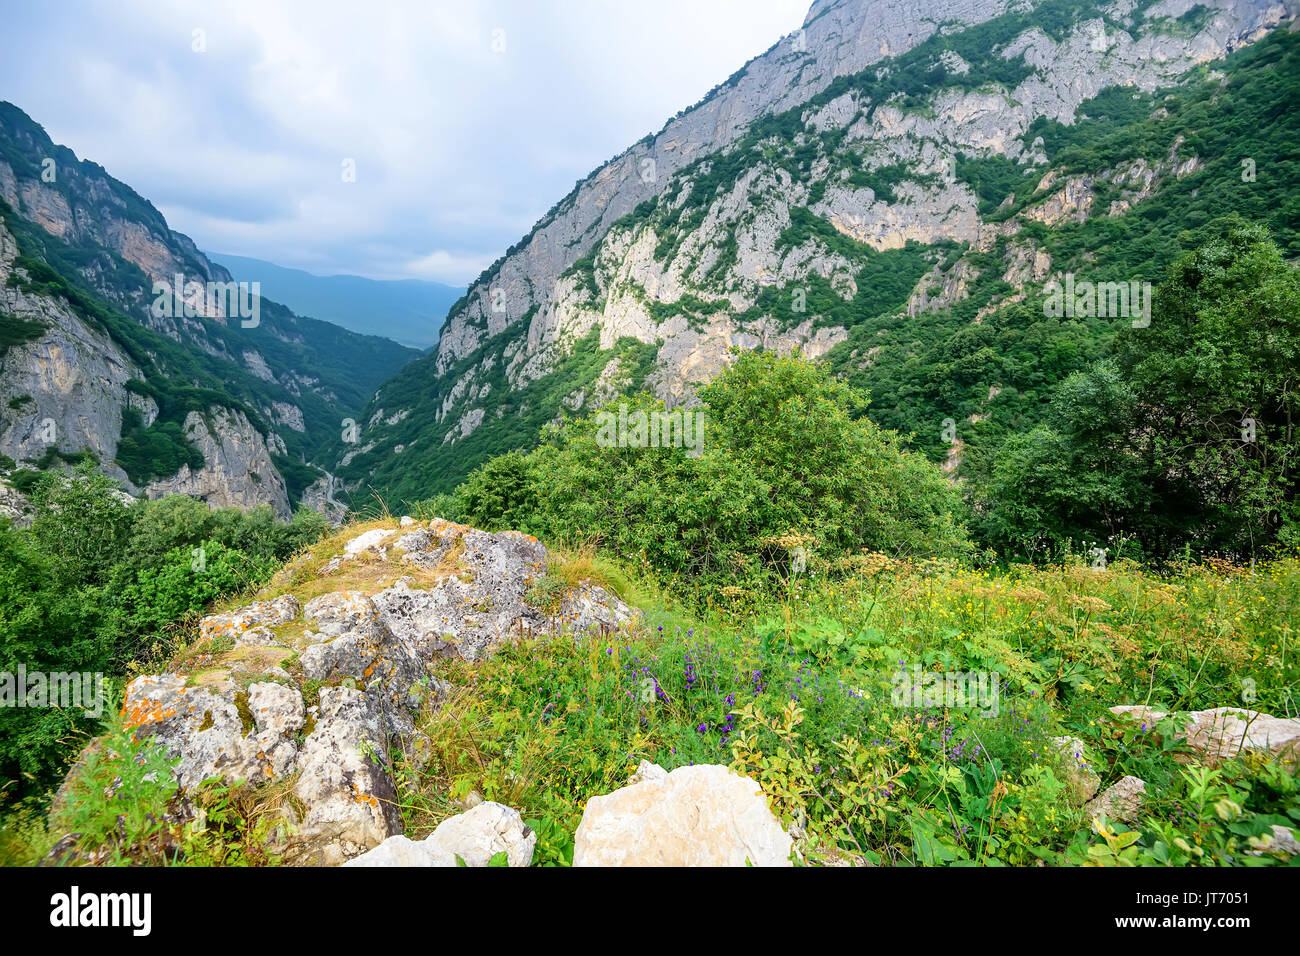 Mountain landscape in North Ossetia - Stock Image